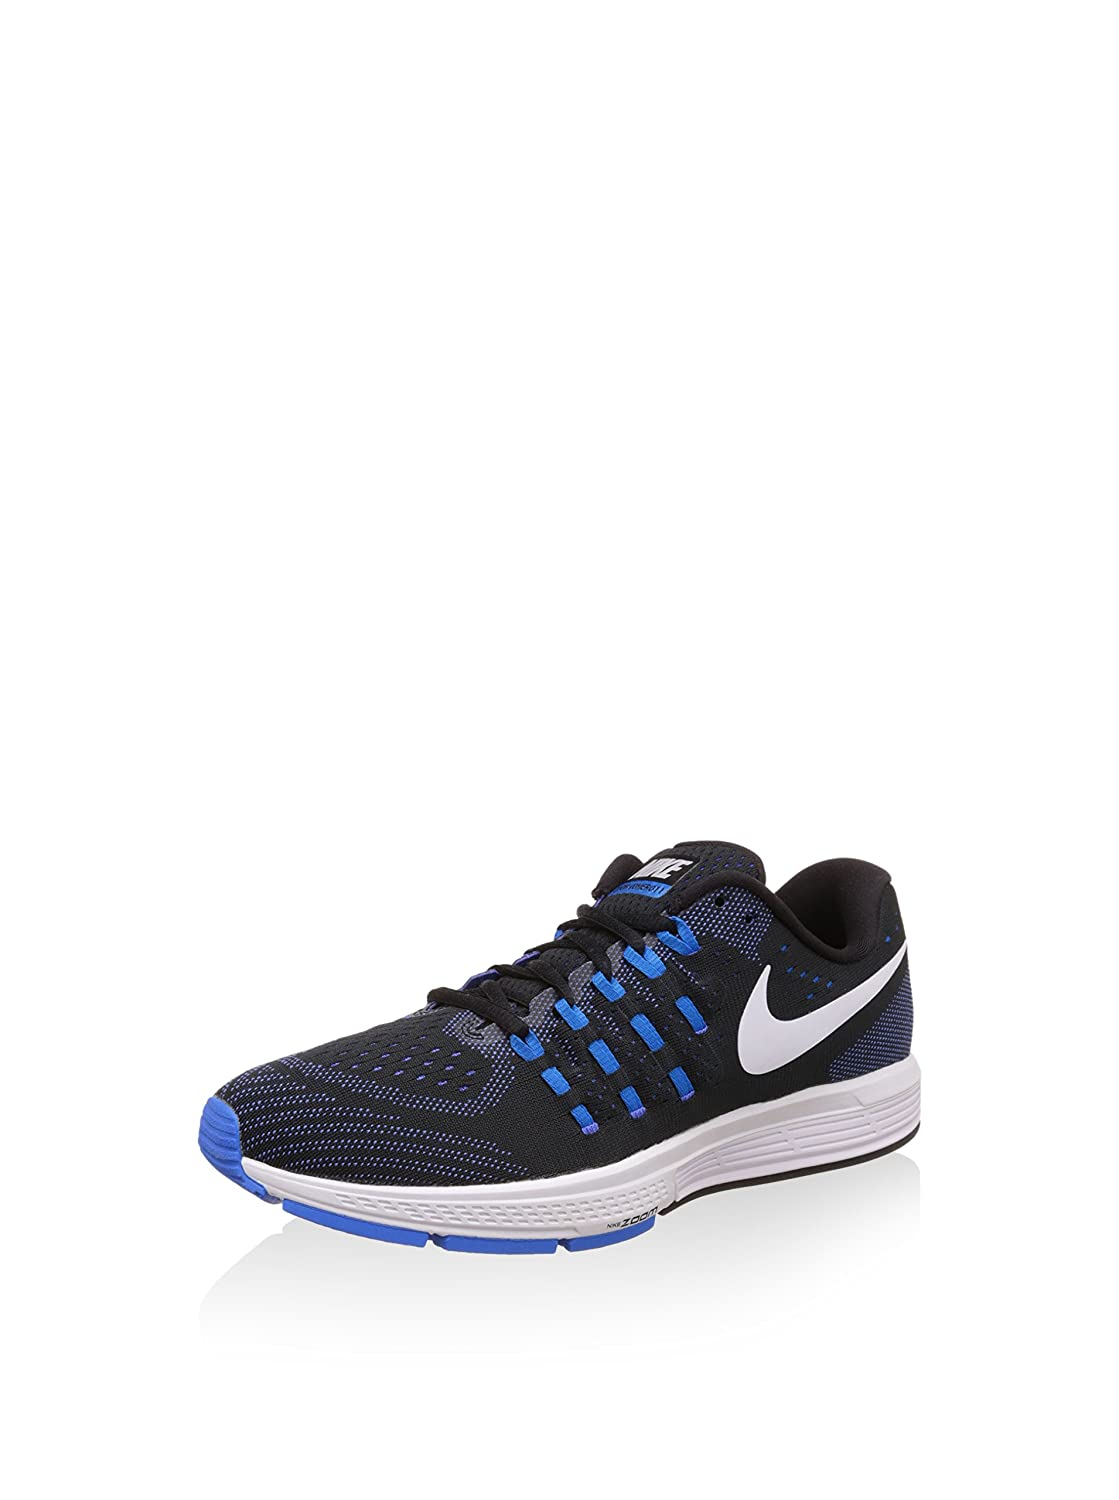 Nike Men's Air Zoom Vomero 11 Running Shoes B01IOE6O7Q 7 D(M) US|Black White Photo Blue 014